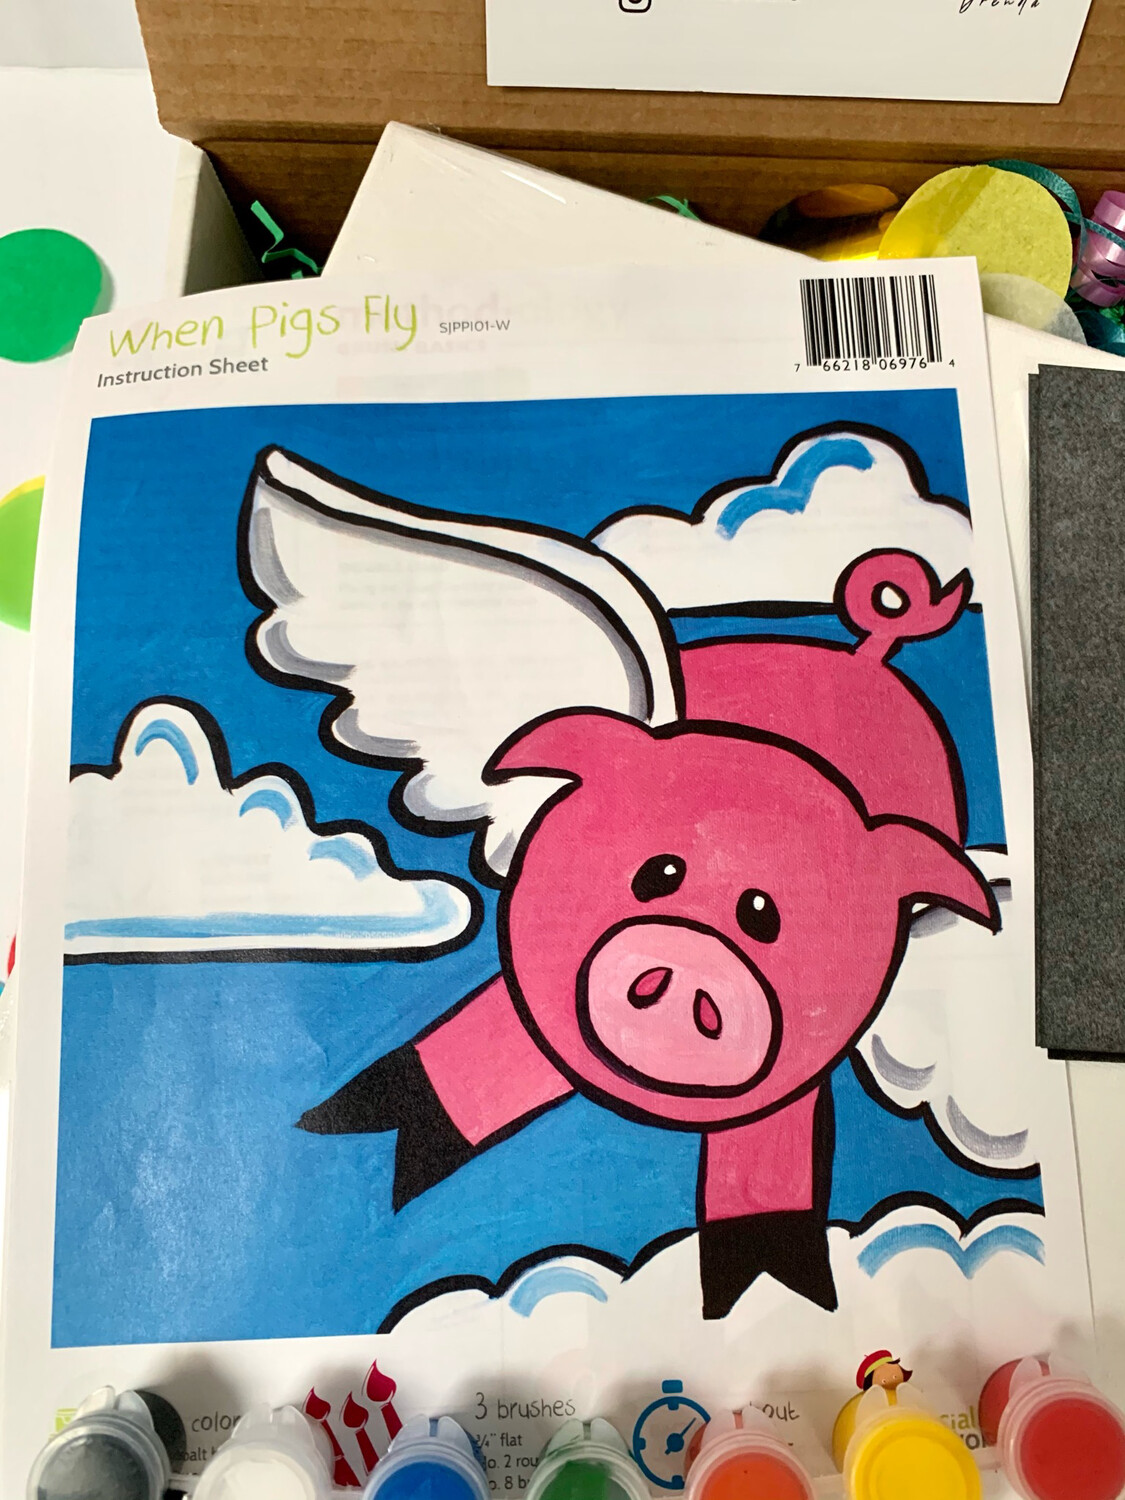 When Pigs Fly KIDS Acrylic Paint On Canvas DIY Art Kit